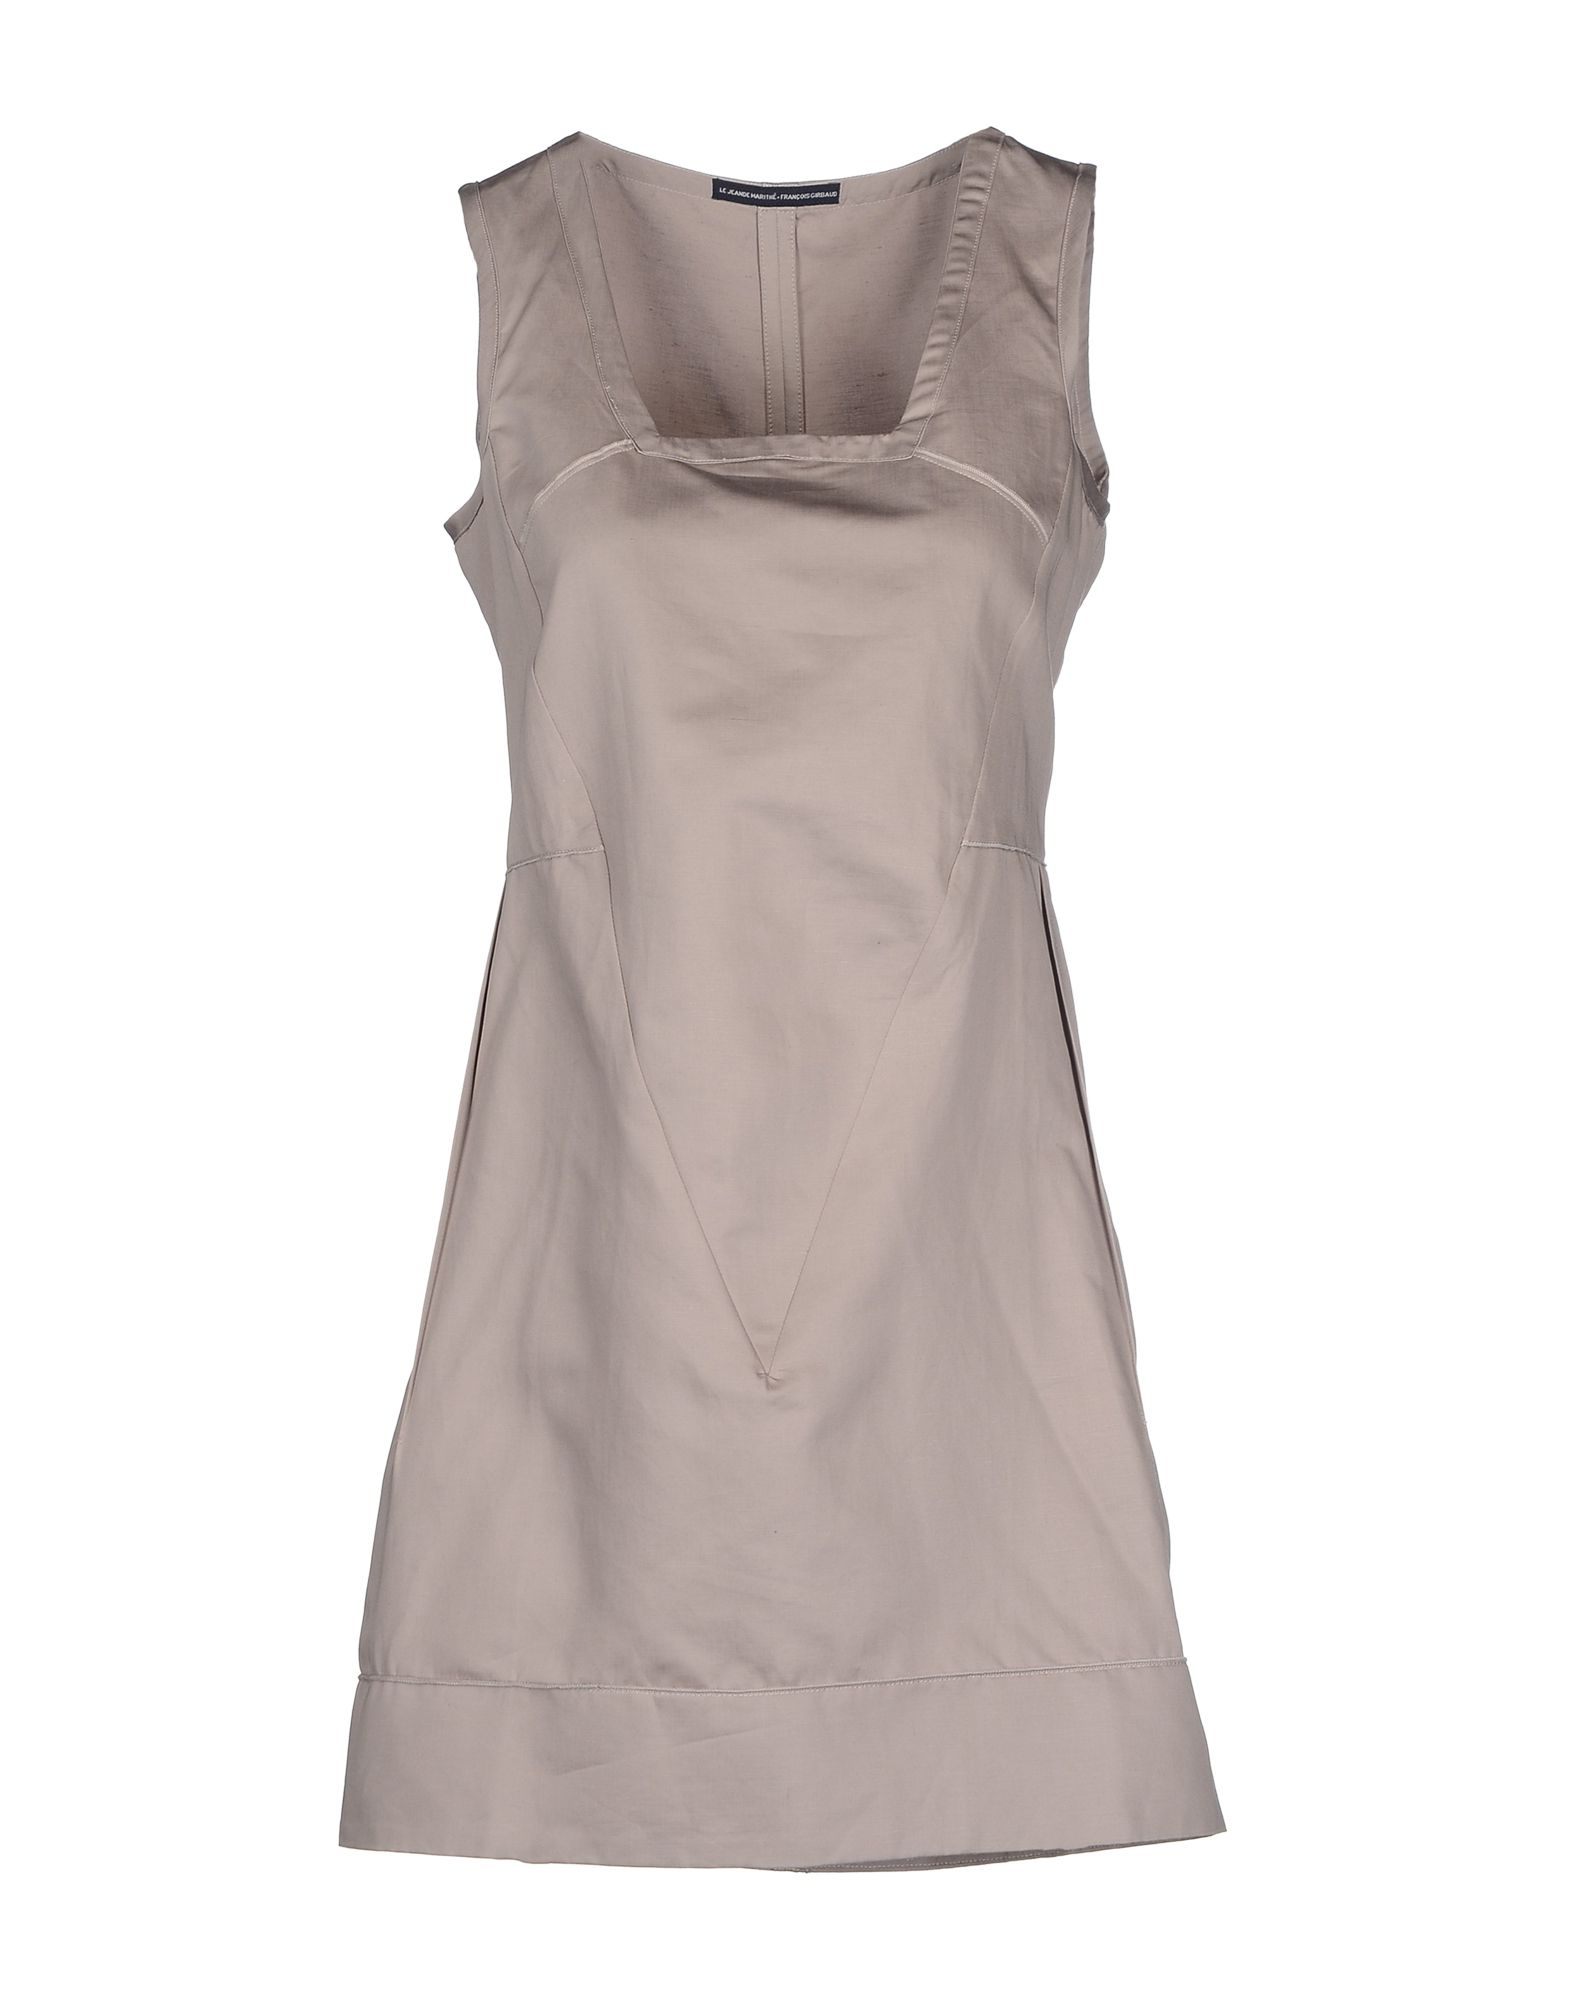 le jean de marith fran ois girbaud short dress in gray dove grey save 50 lyst. Black Bedroom Furniture Sets. Home Design Ideas